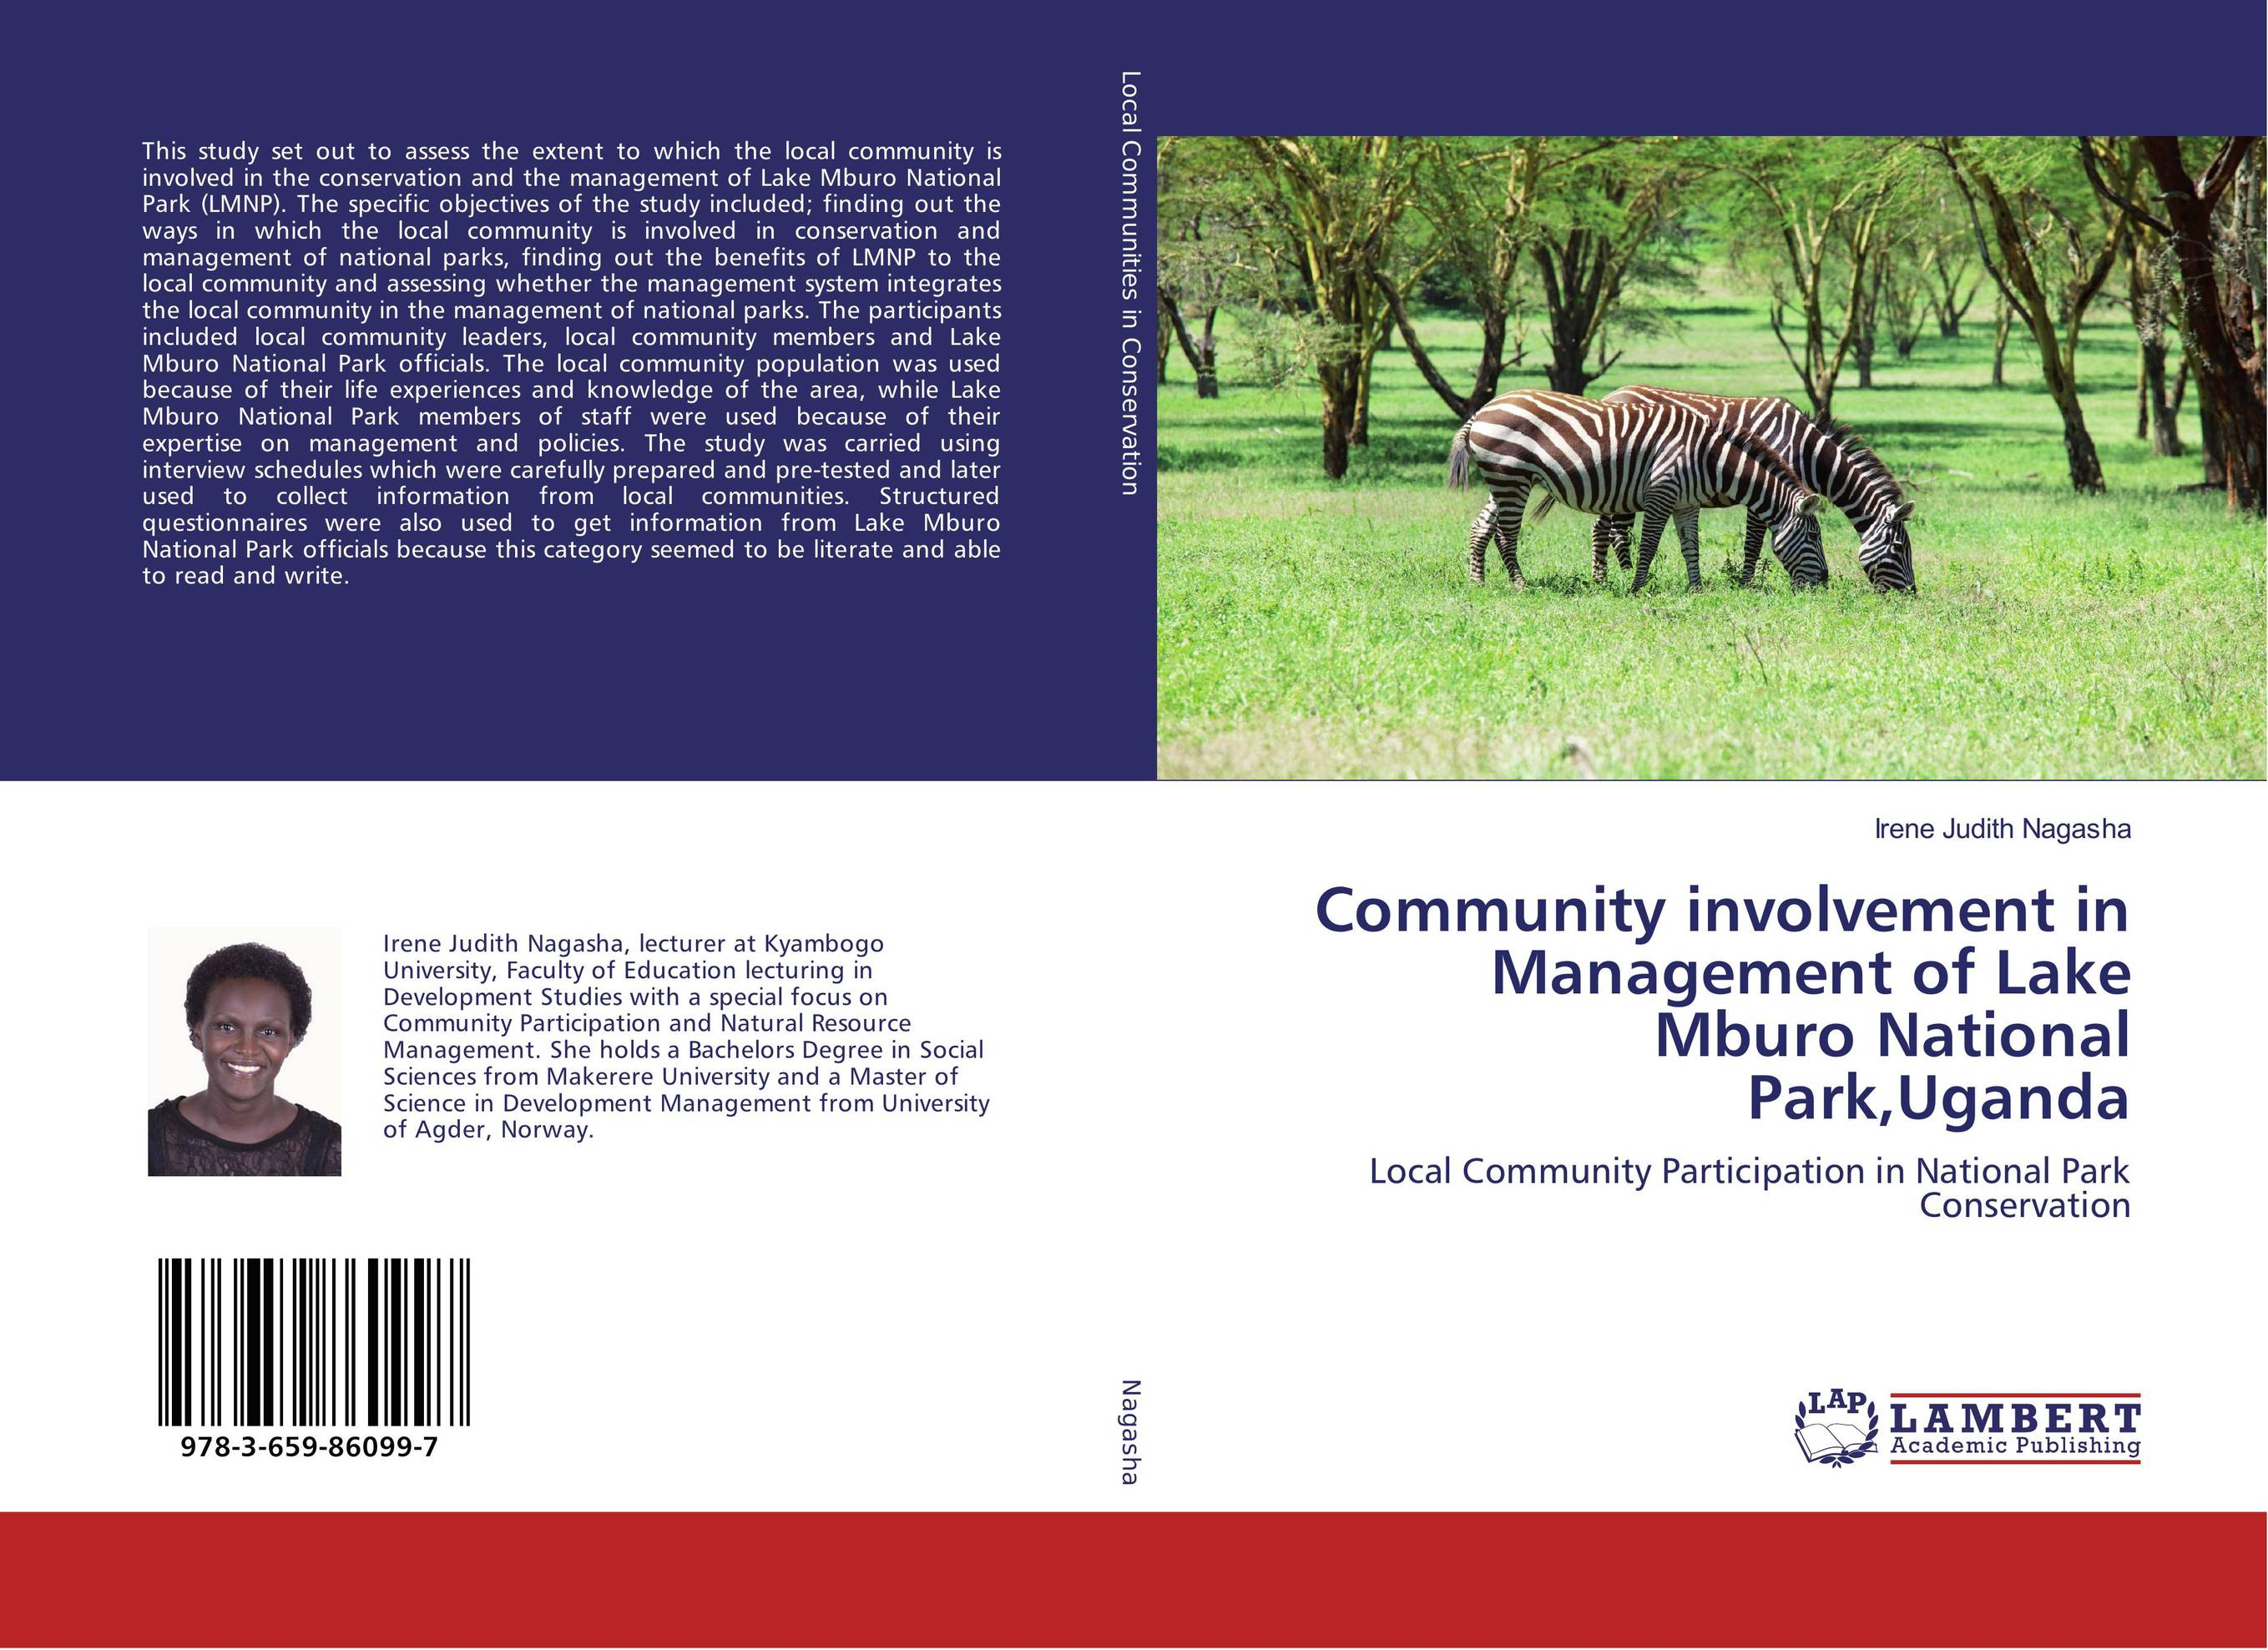 Community involvement in Management of Lake Mburo National Park,Uganda public parks – the key to livable communities